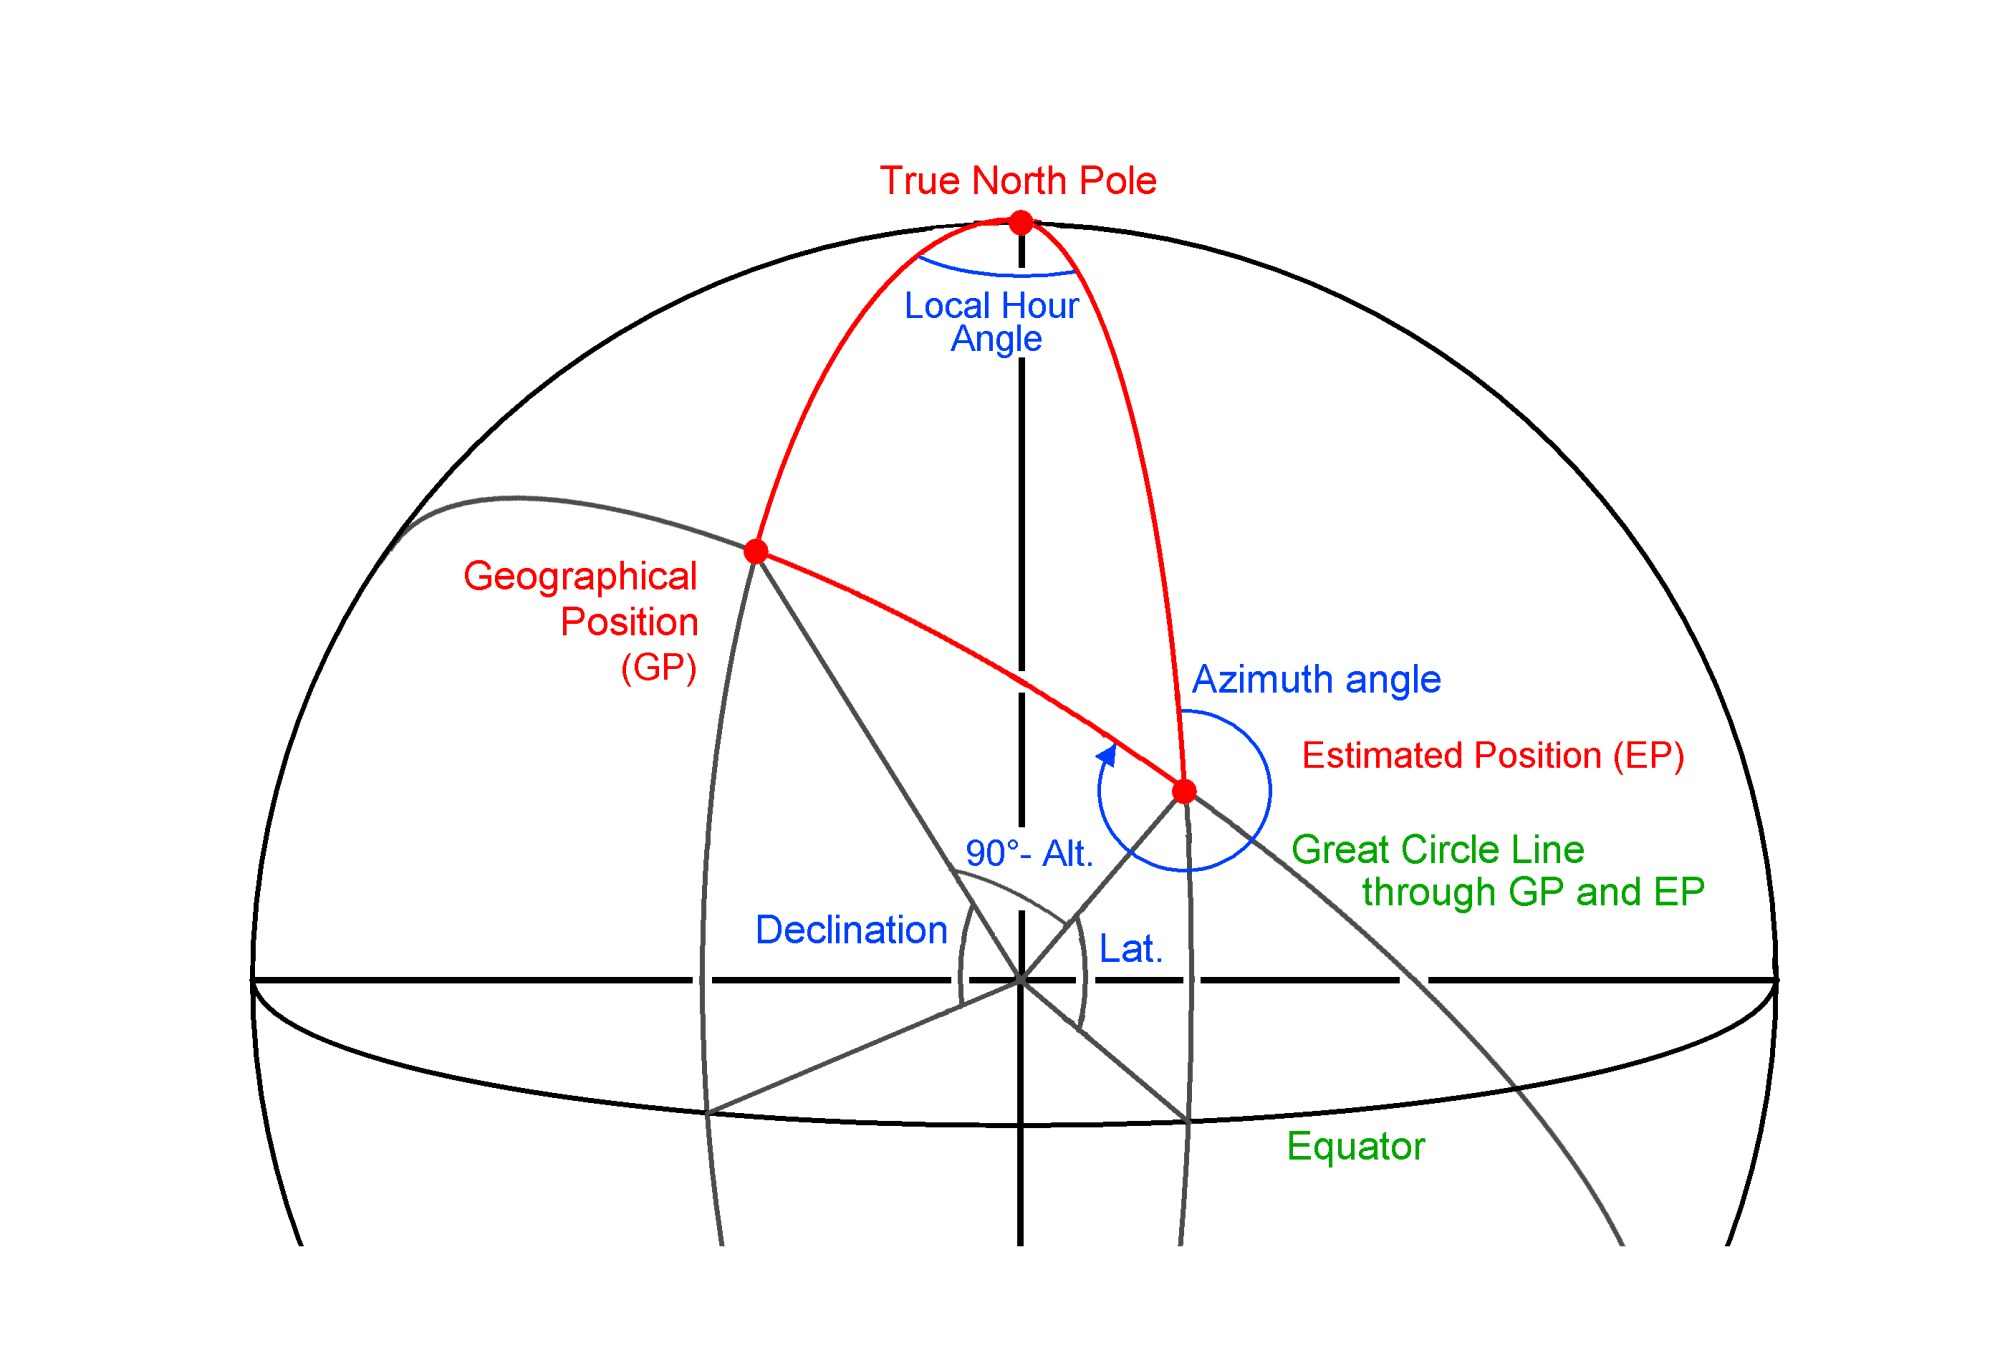 hight resolution of navigational triangle jpg 540858 bytes